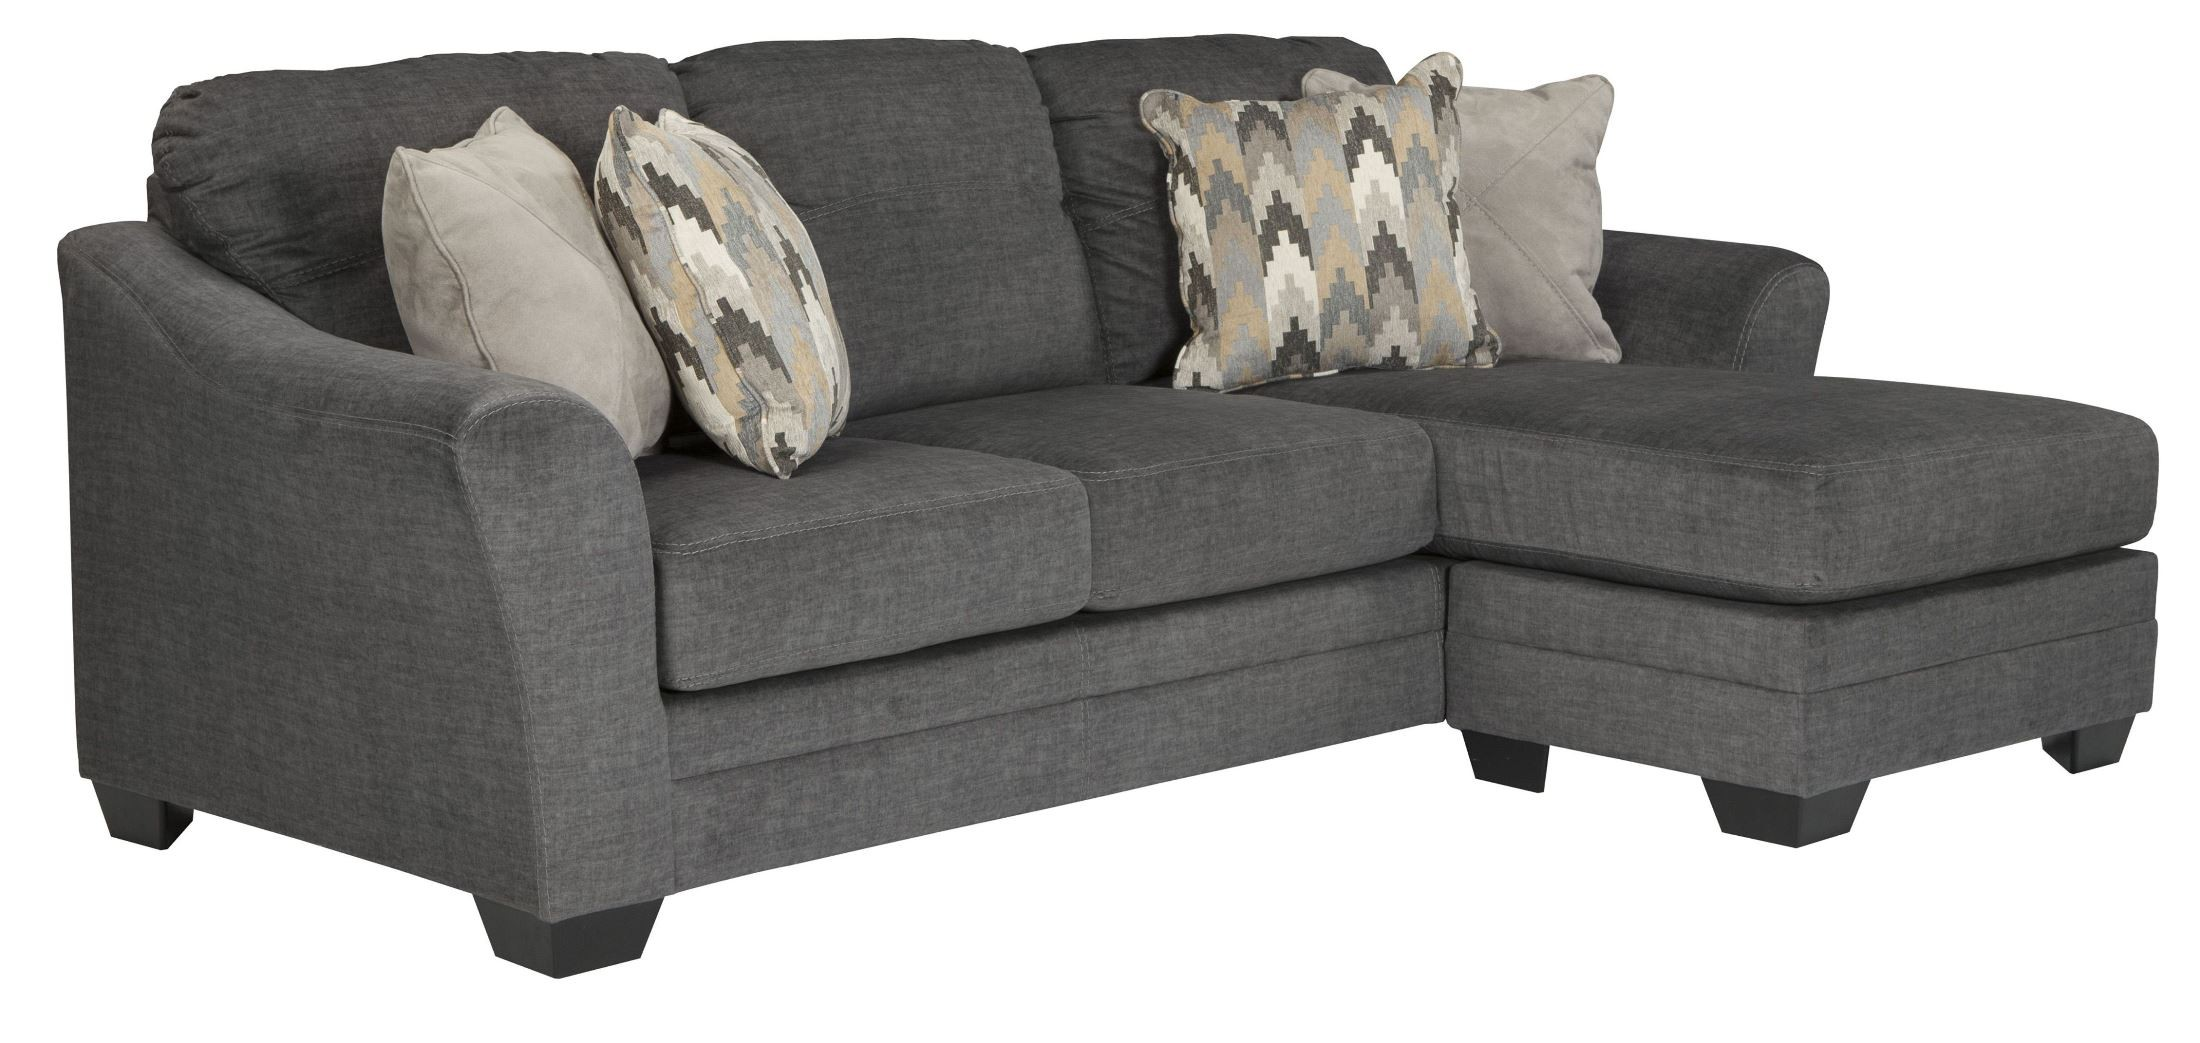 Braxlin Charcoal Sofa Chaise From Ashley 8850218